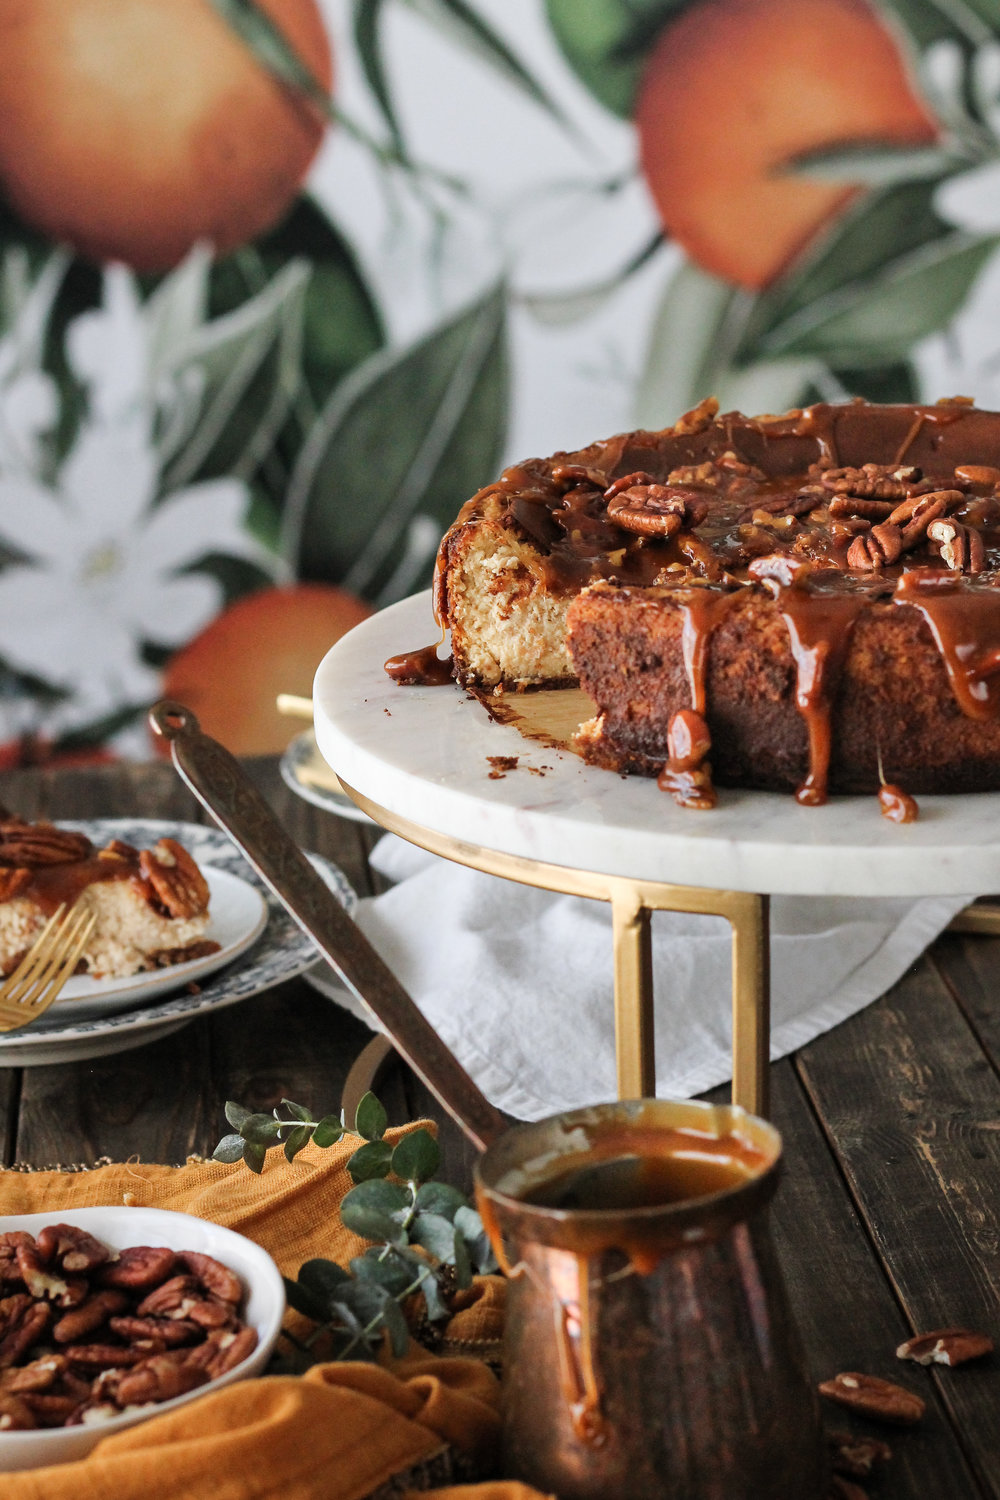 Scoot+over+pumpkin+pie,+this+Maple+Cinnamon+Cheesecake+with+Pecan+Caramel+is+the+ultimate+fall+dessert!+[+www.pedanticfoodie.jpg